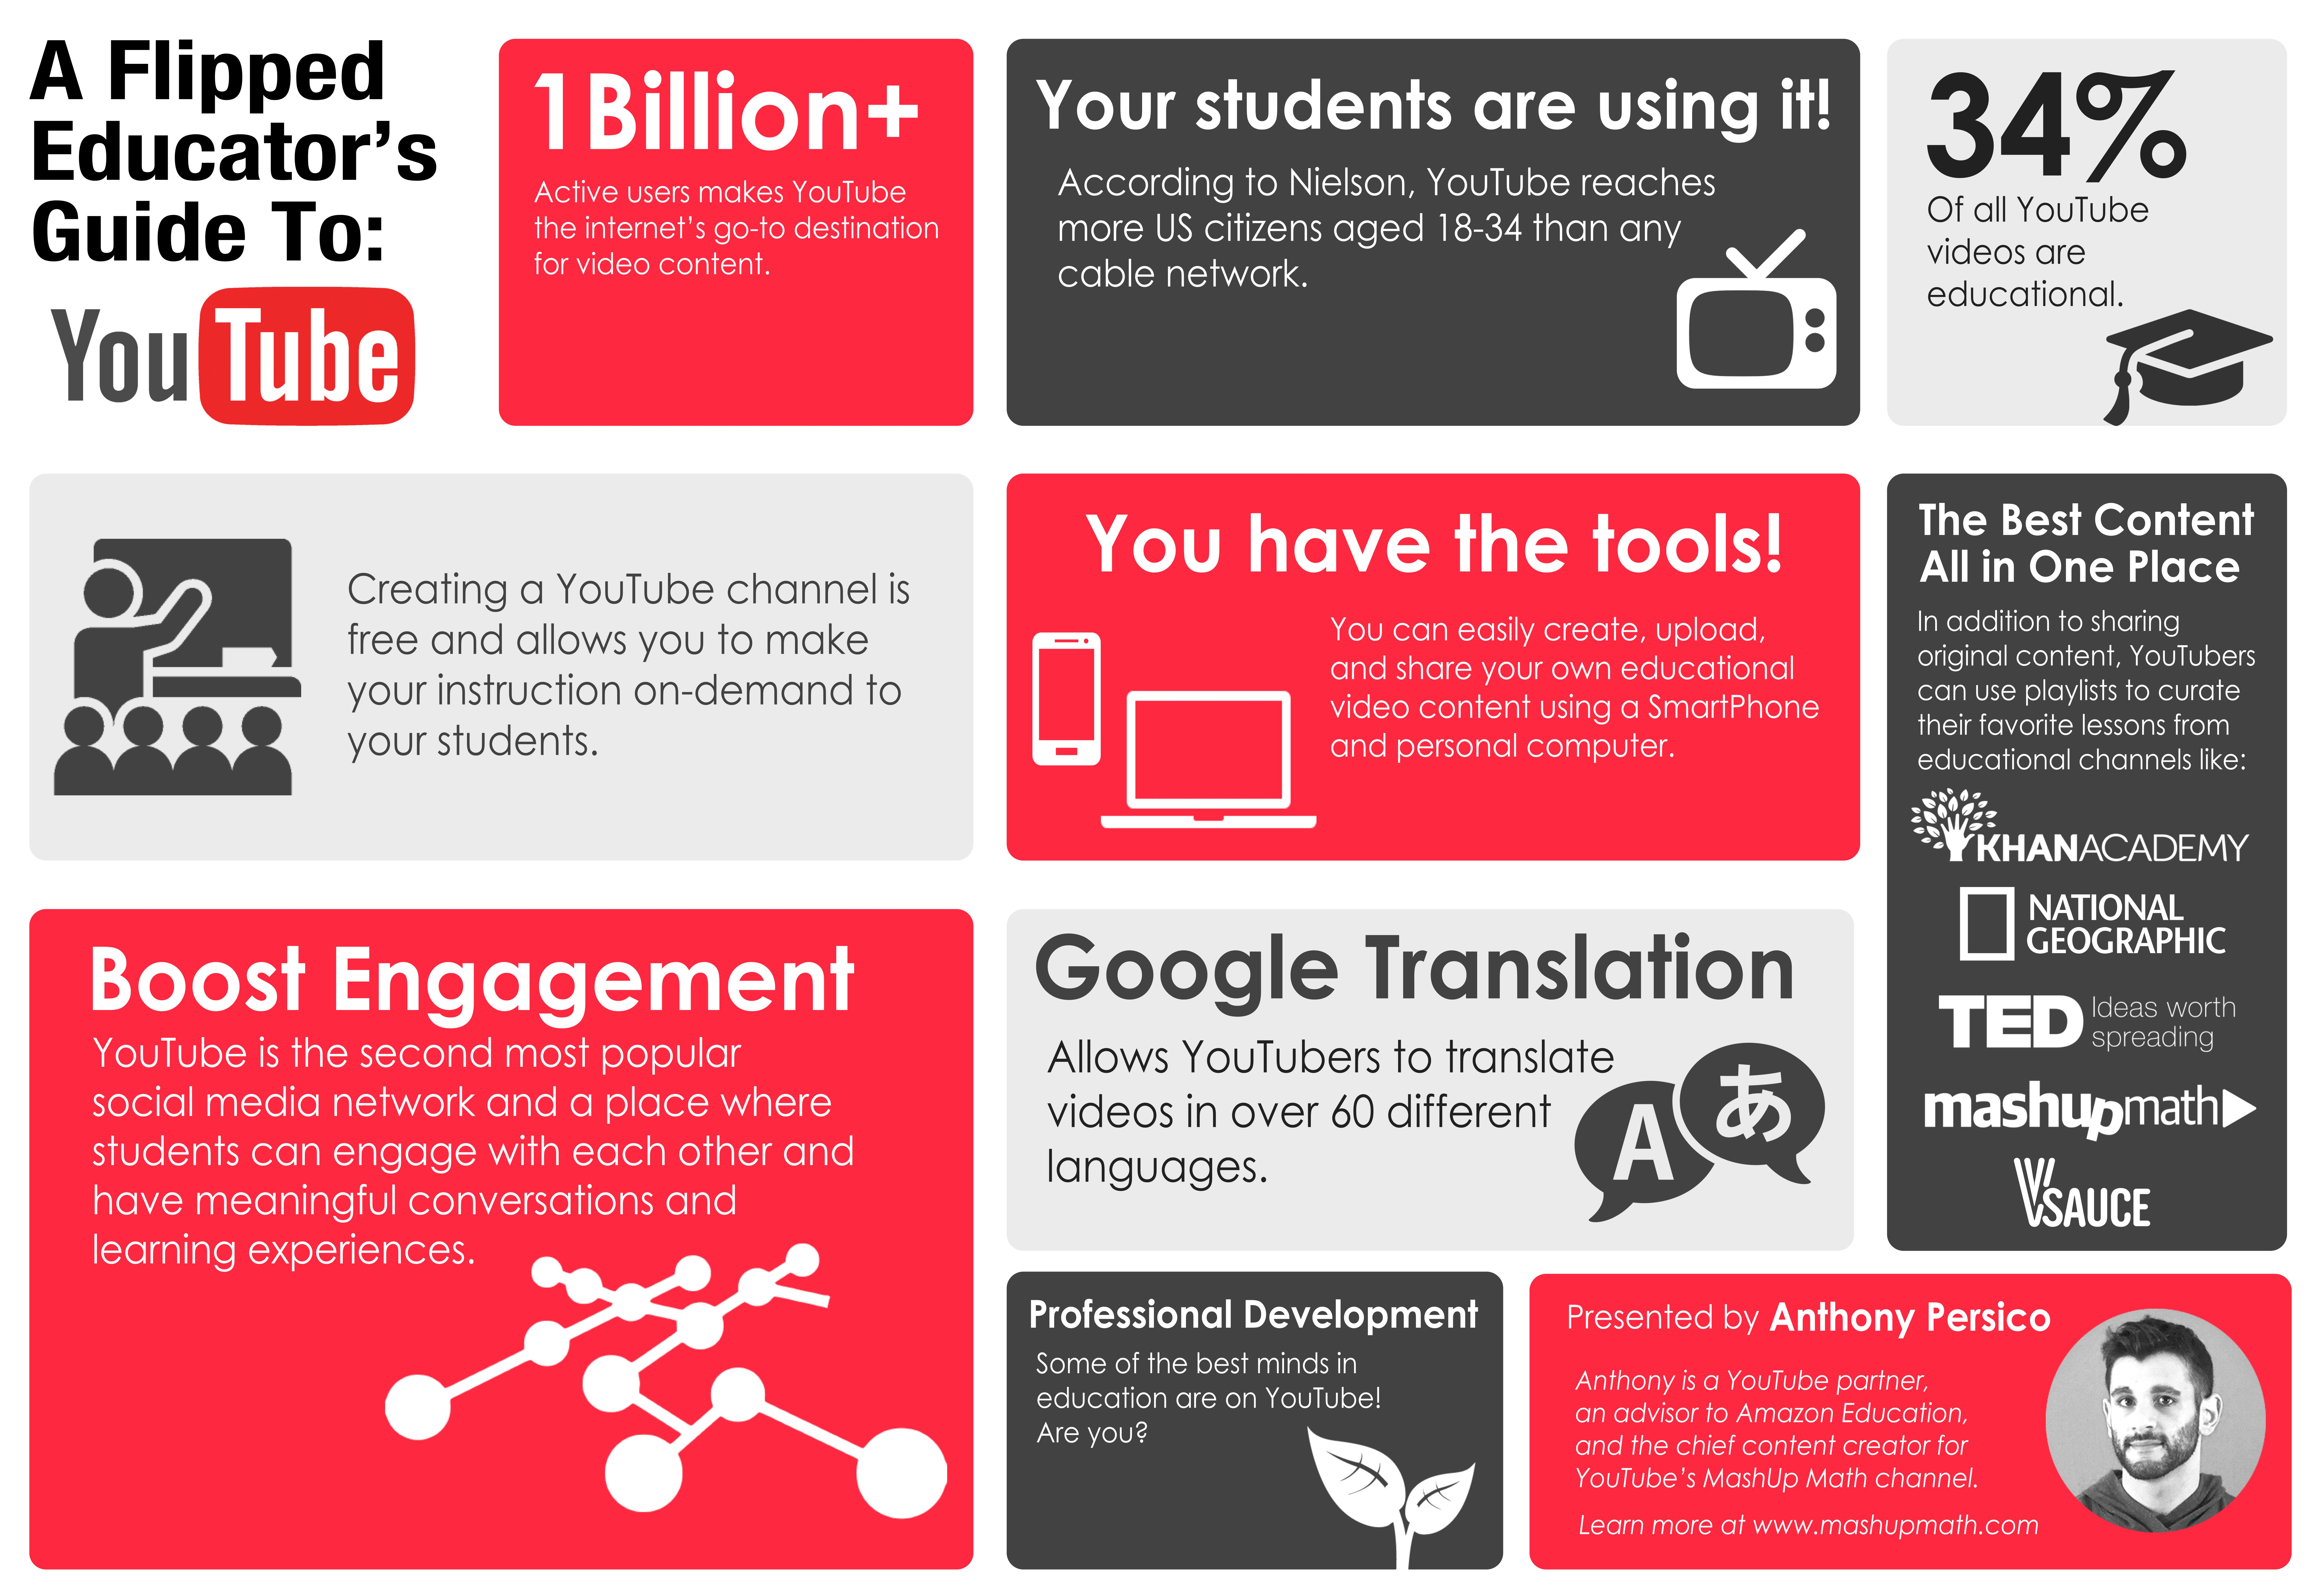 How Can Flipped Classroom Teachers Use Youtube To Create